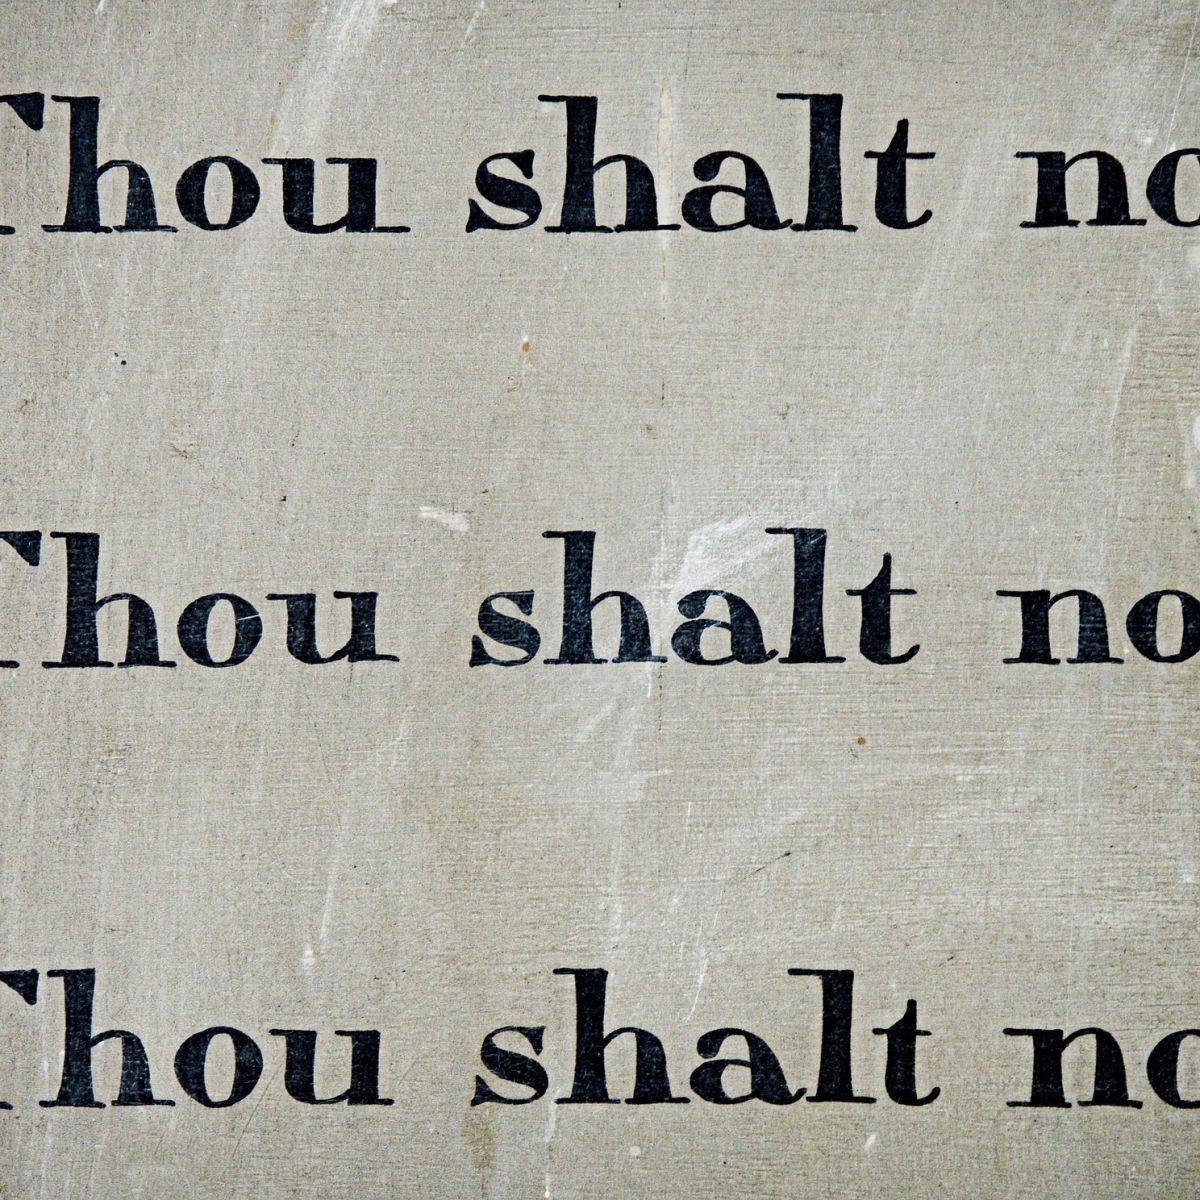 Thou shalt not - commandement - guilt - rules